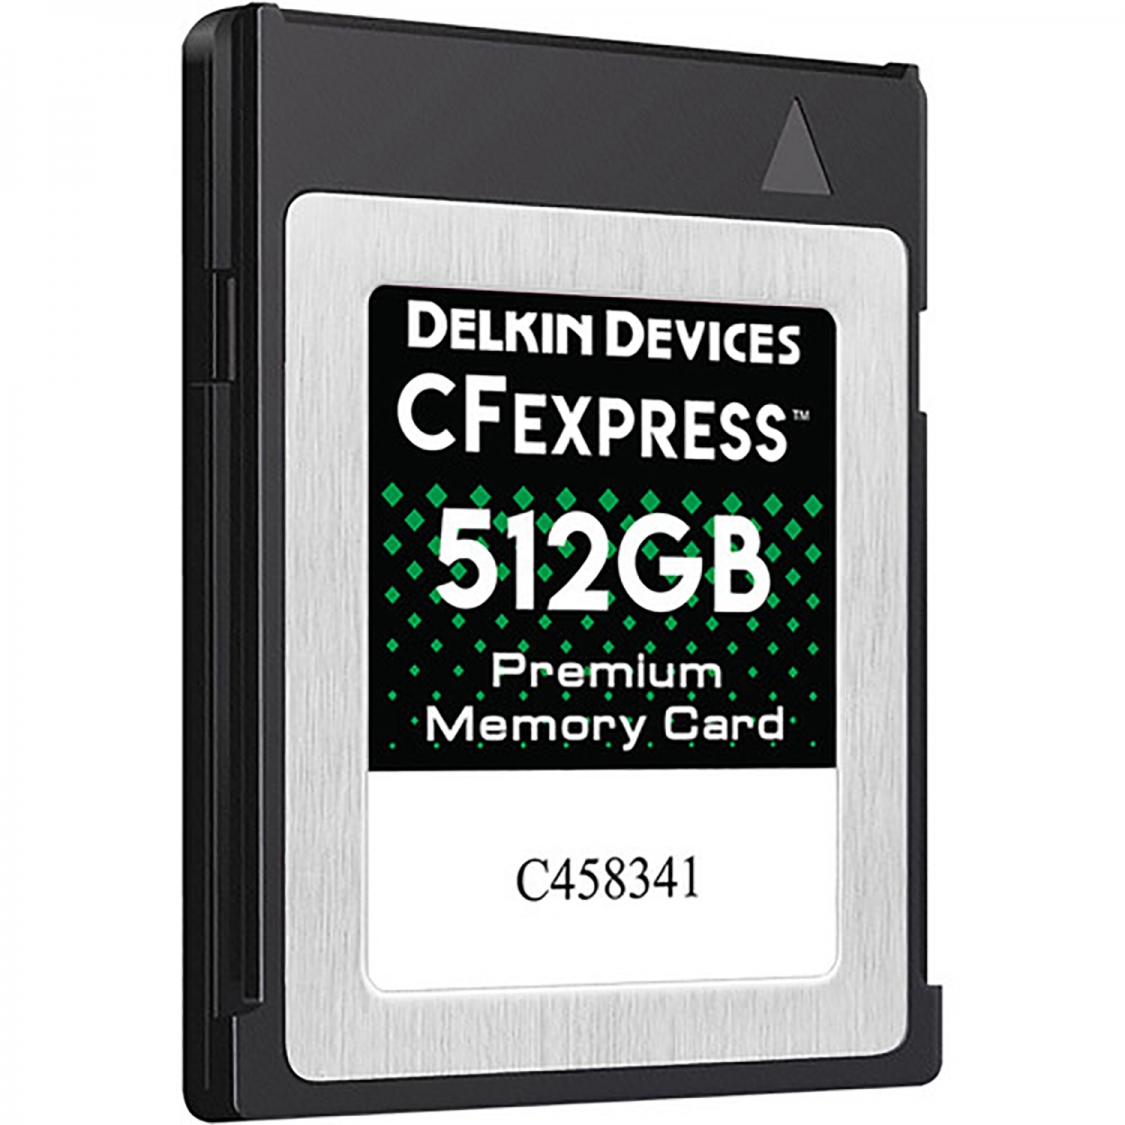 Delkin CFexpress 512gb 1700mbs